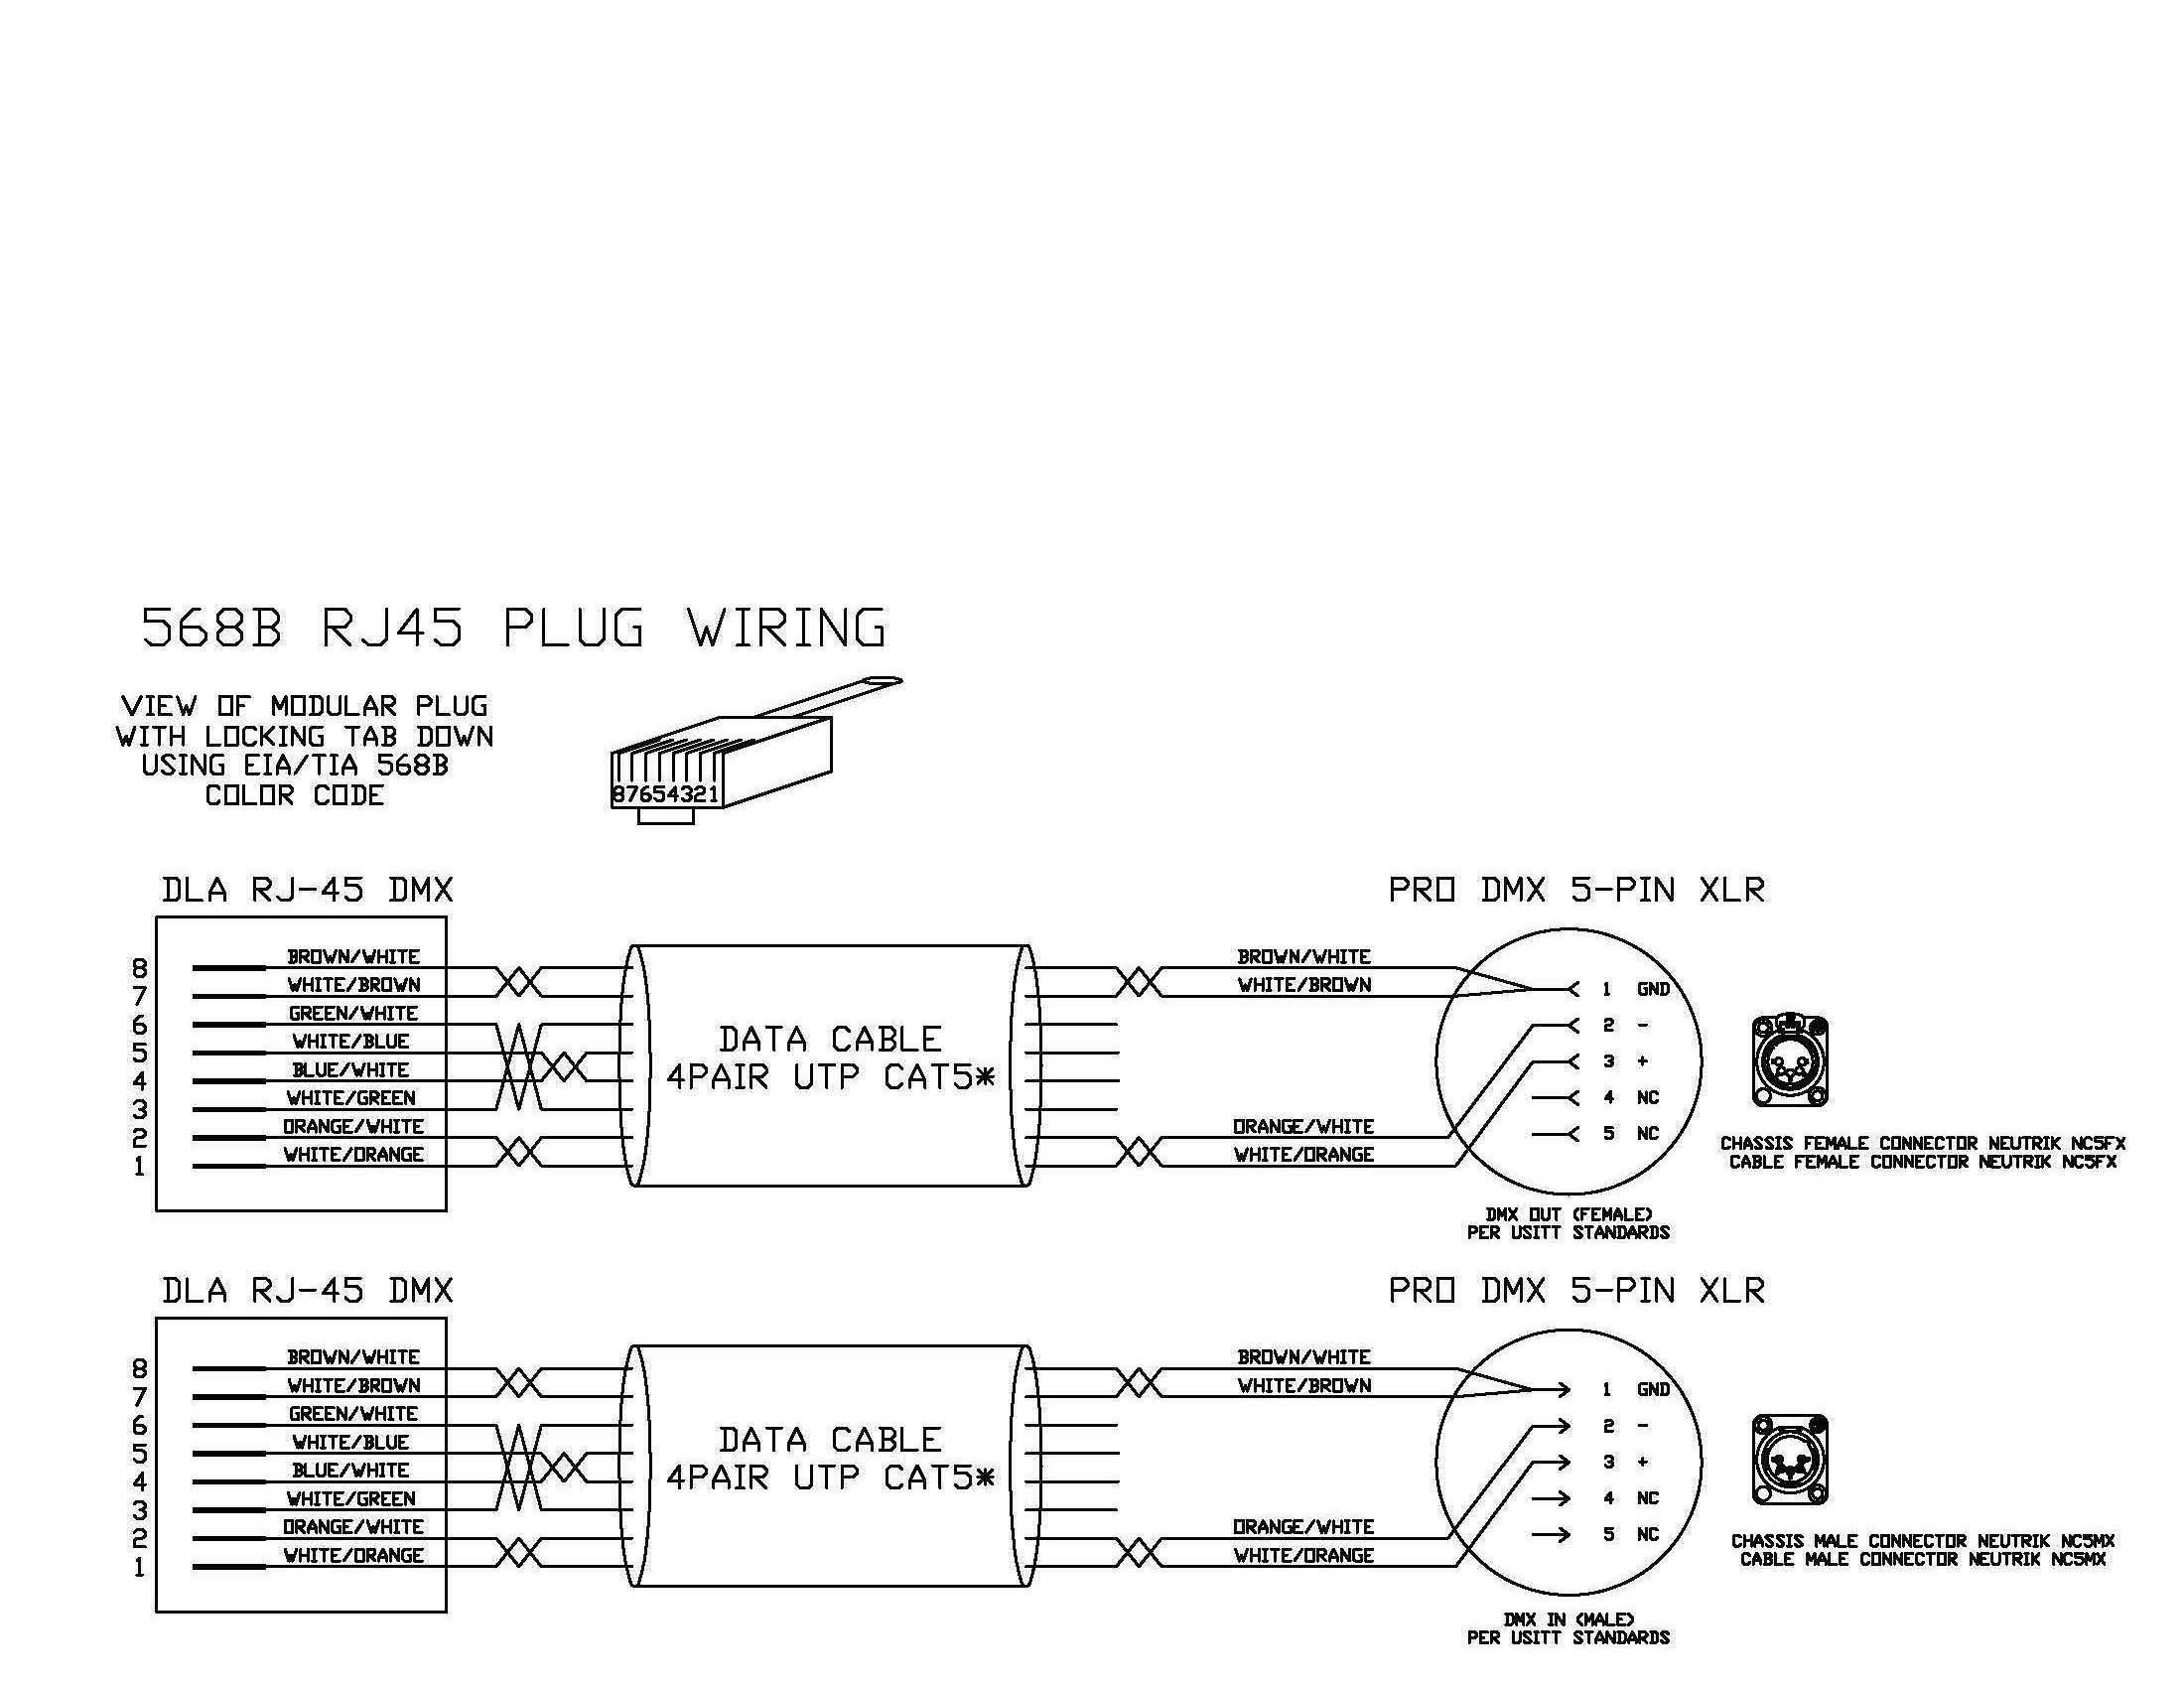 e975ddb6a839e630c21b81db05ca4fa6 xlr to rj45 wiring diagram xlr electrical wiring diagrams xlr to rj45 wiring diagram at fashall.co